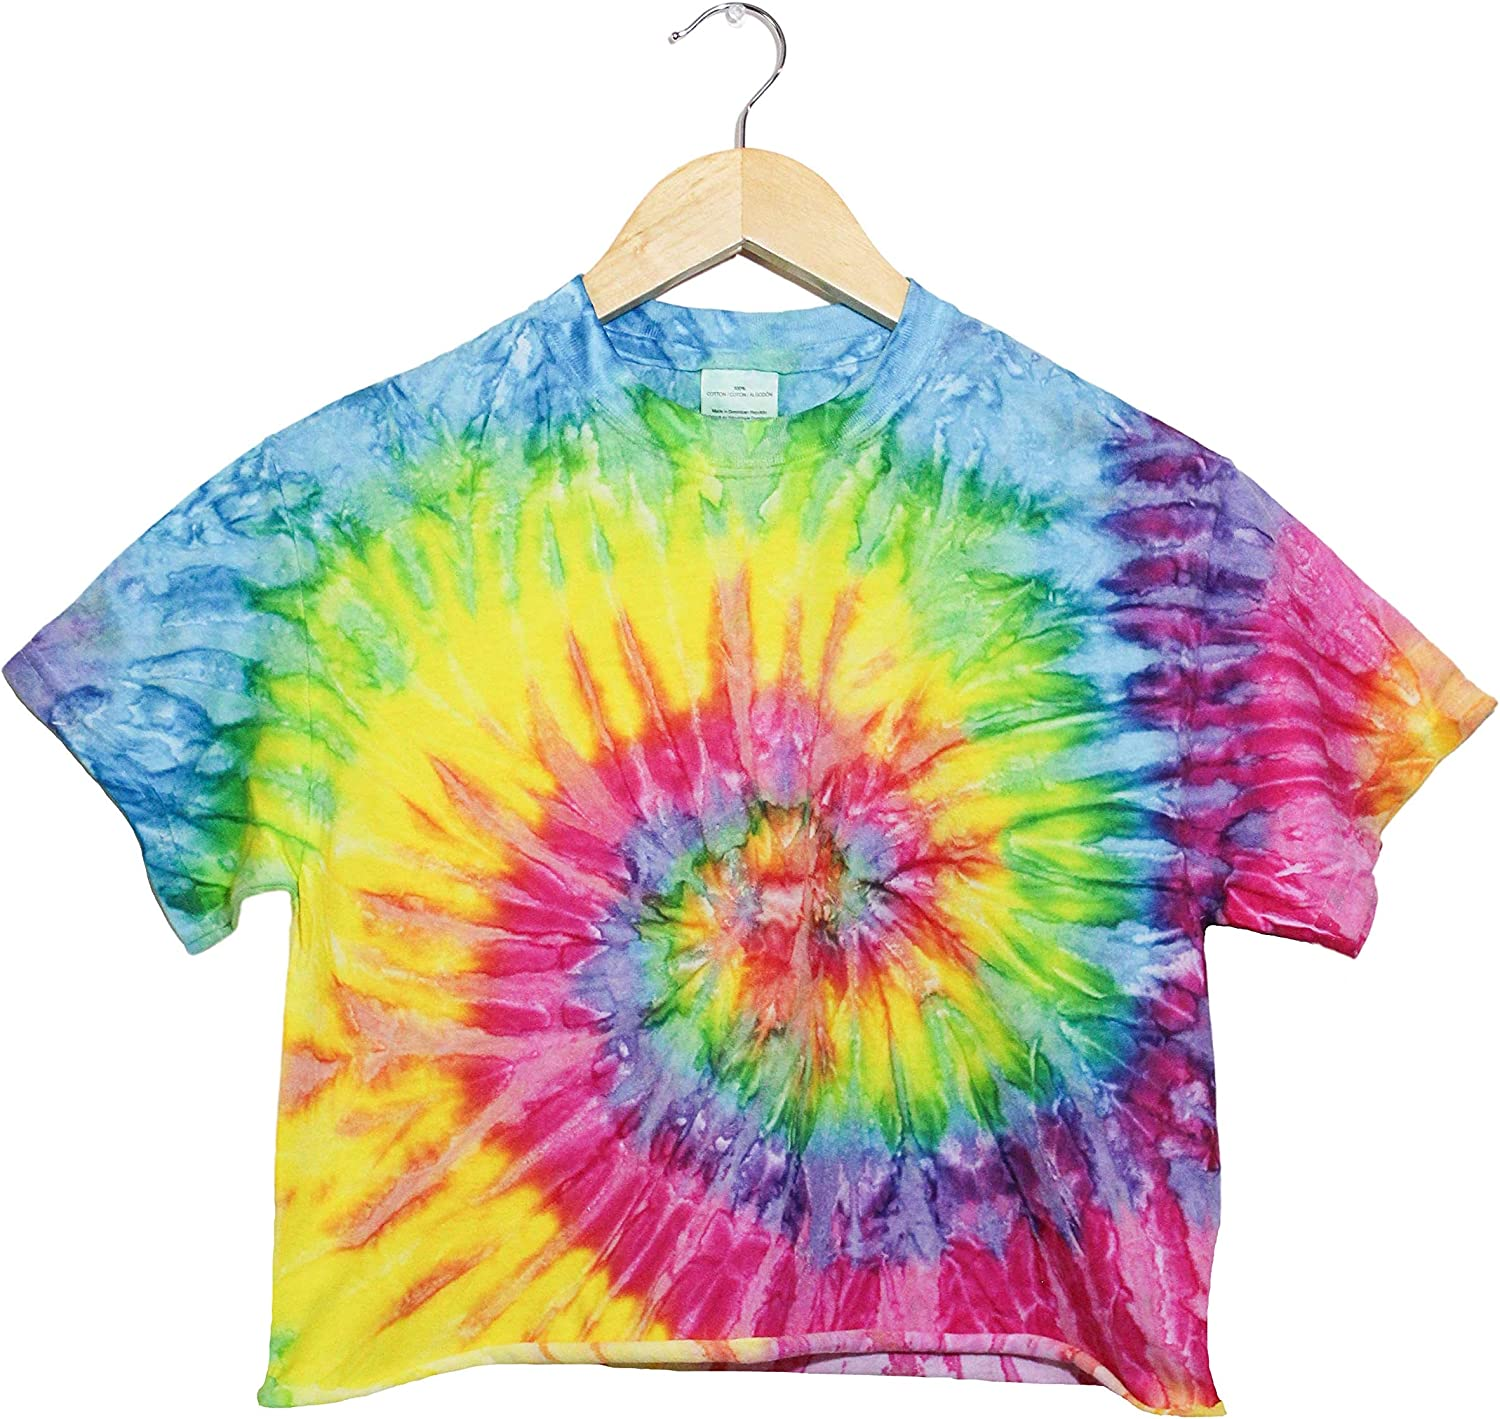 Hand-dyed crop top